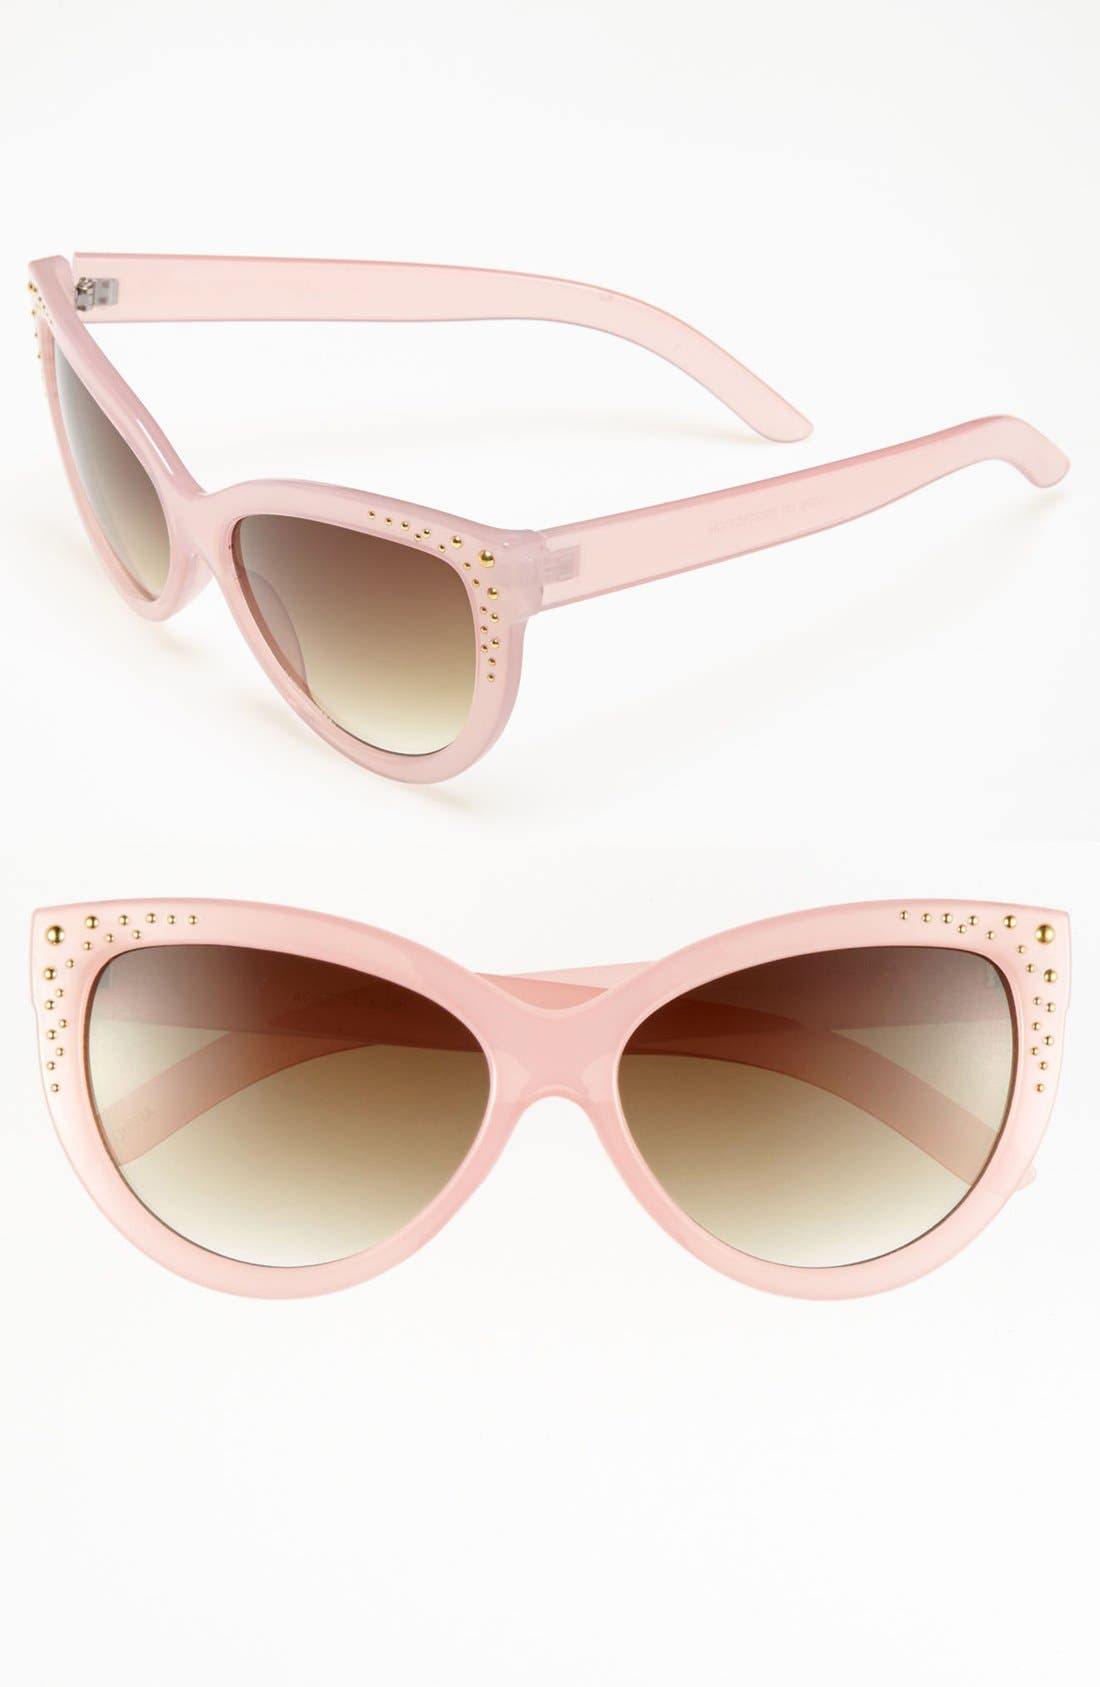 Alternate Image 1 Selected - FE NY 'Elvira' Sunglasses